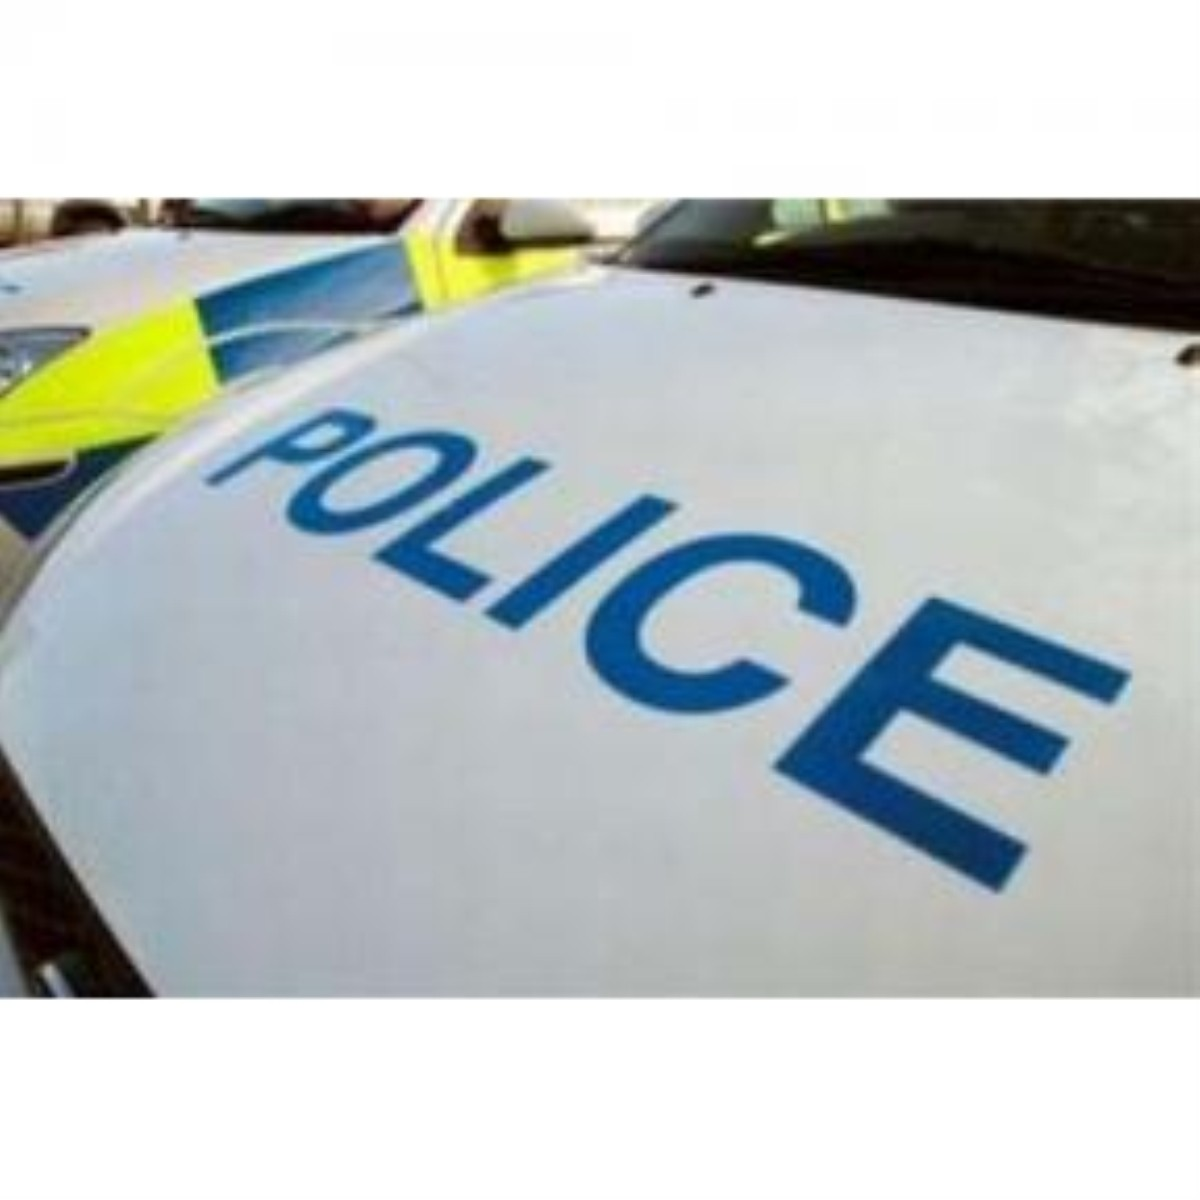 Courier fraud threat in Chard and Ilminster